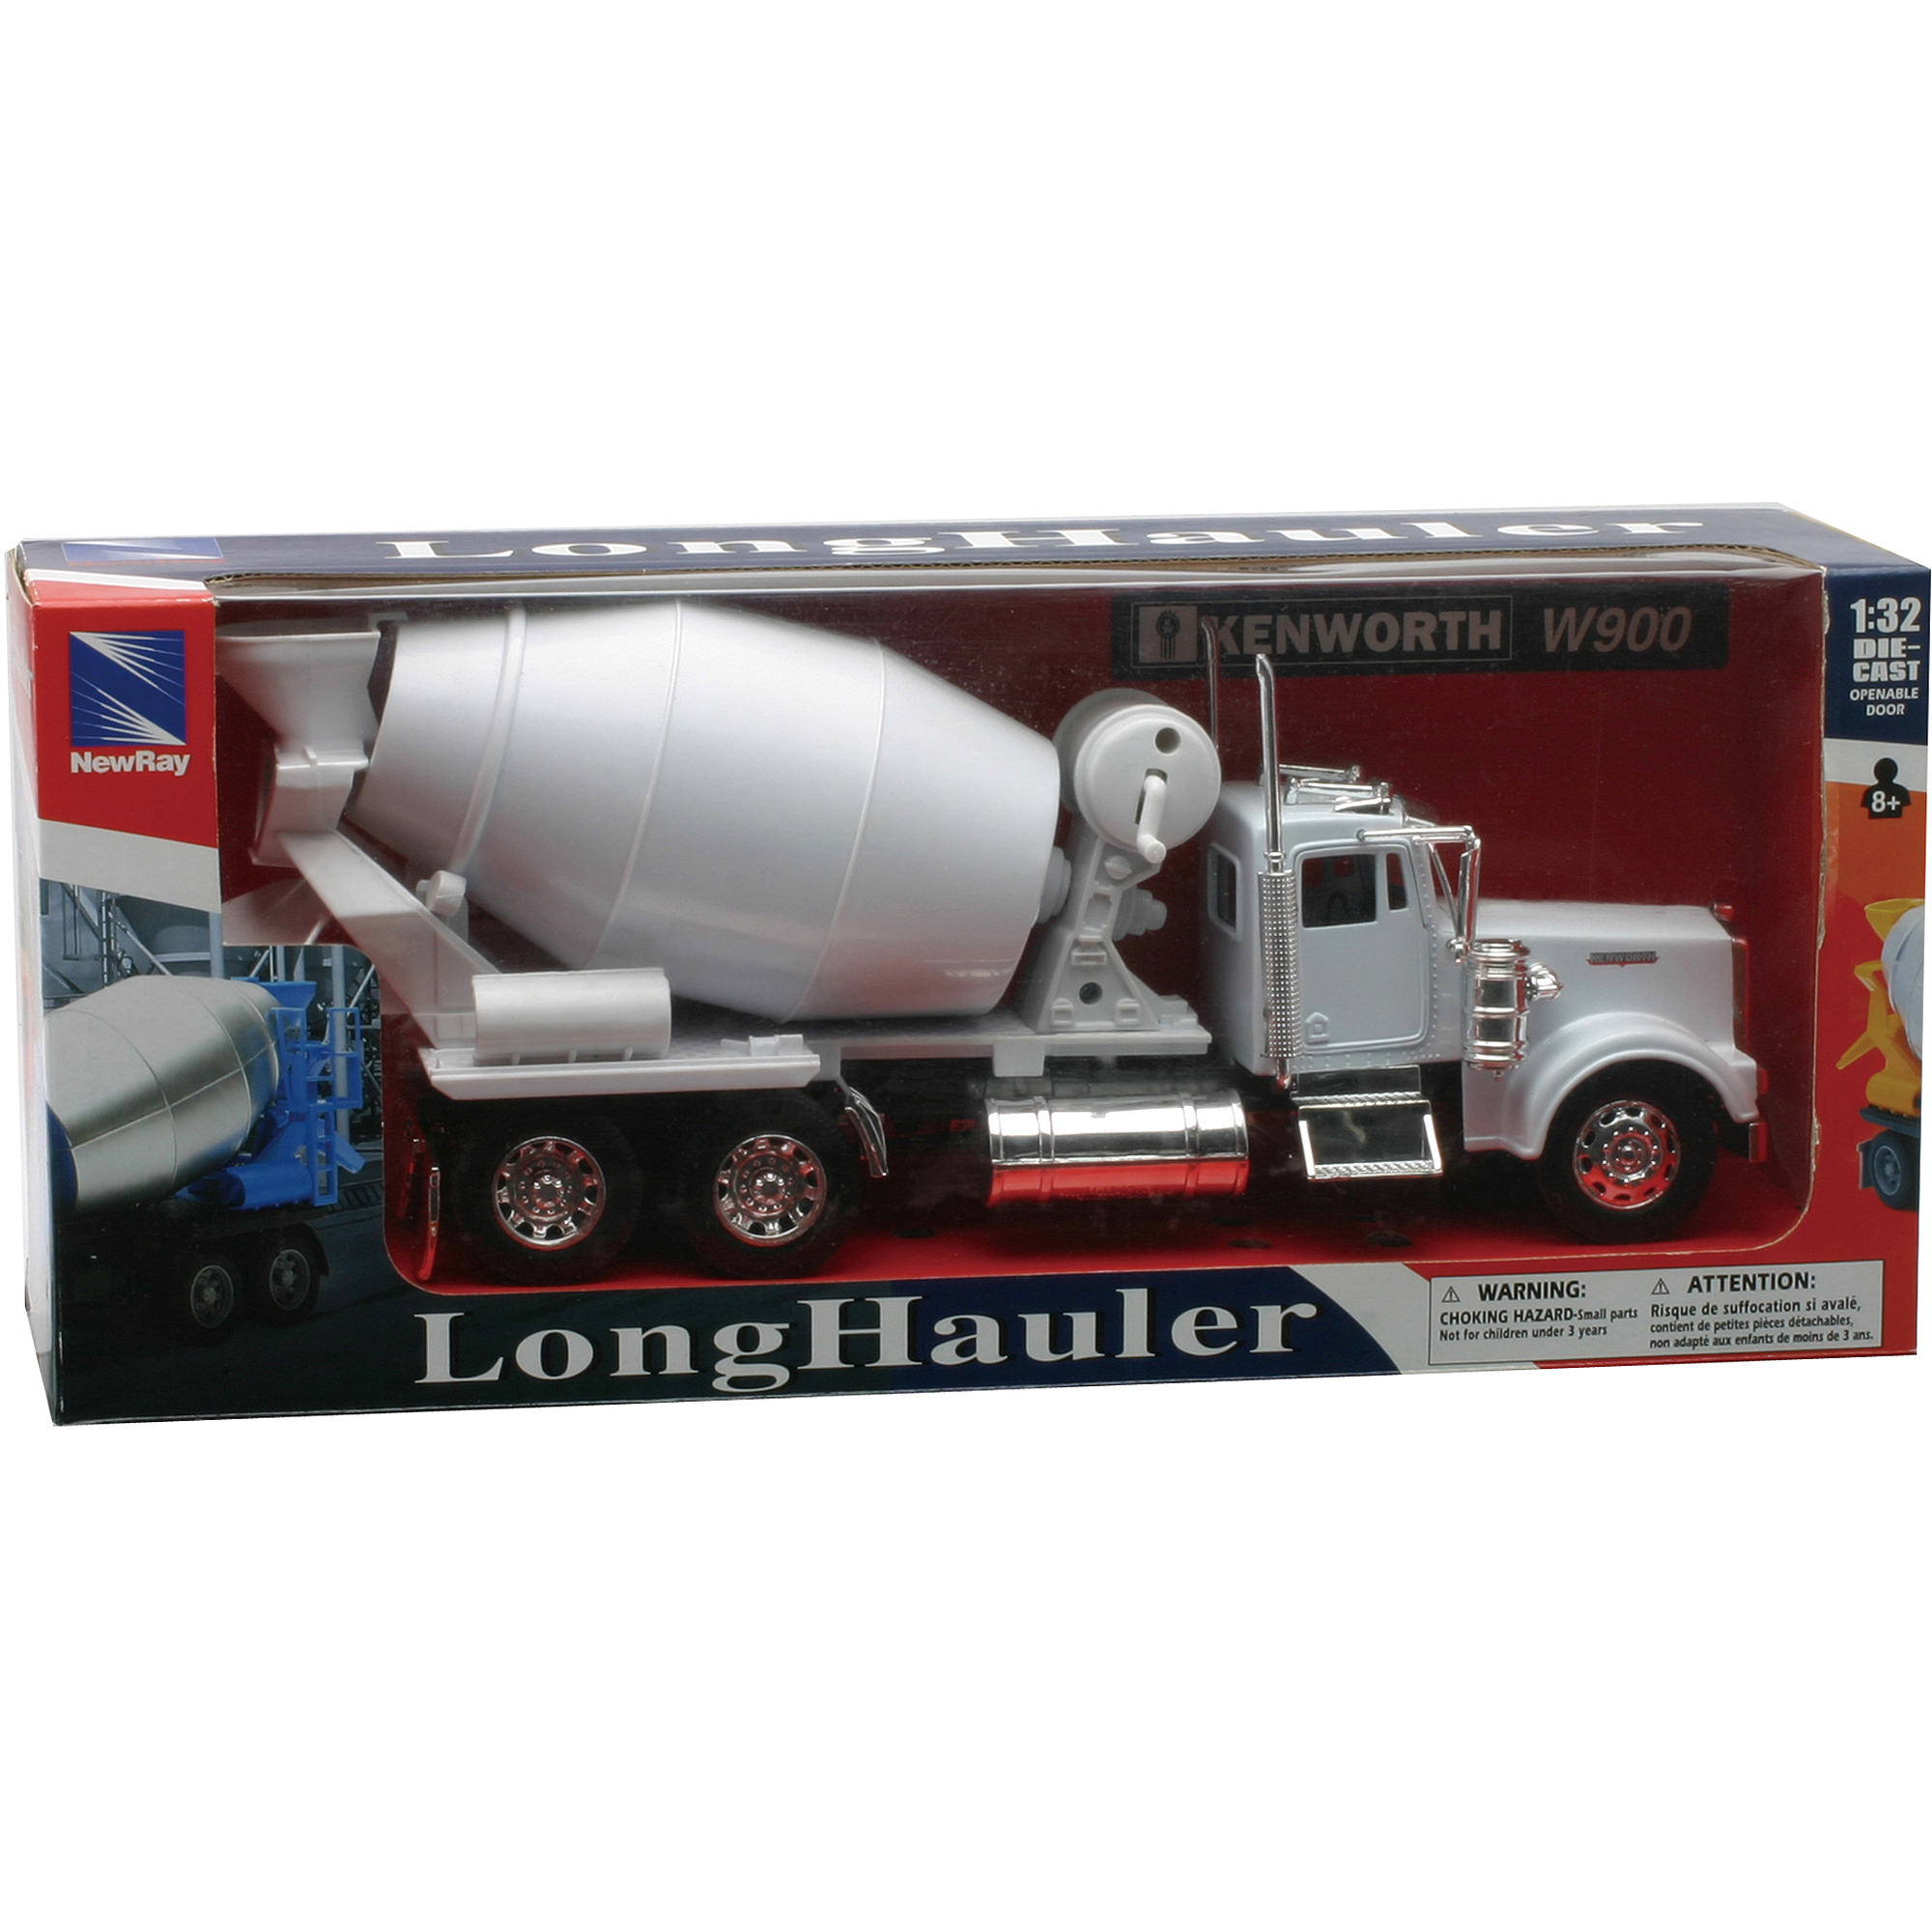 1:32 Scale Die-Cast Kenworth W900 Cement Truck by New-ray Toys